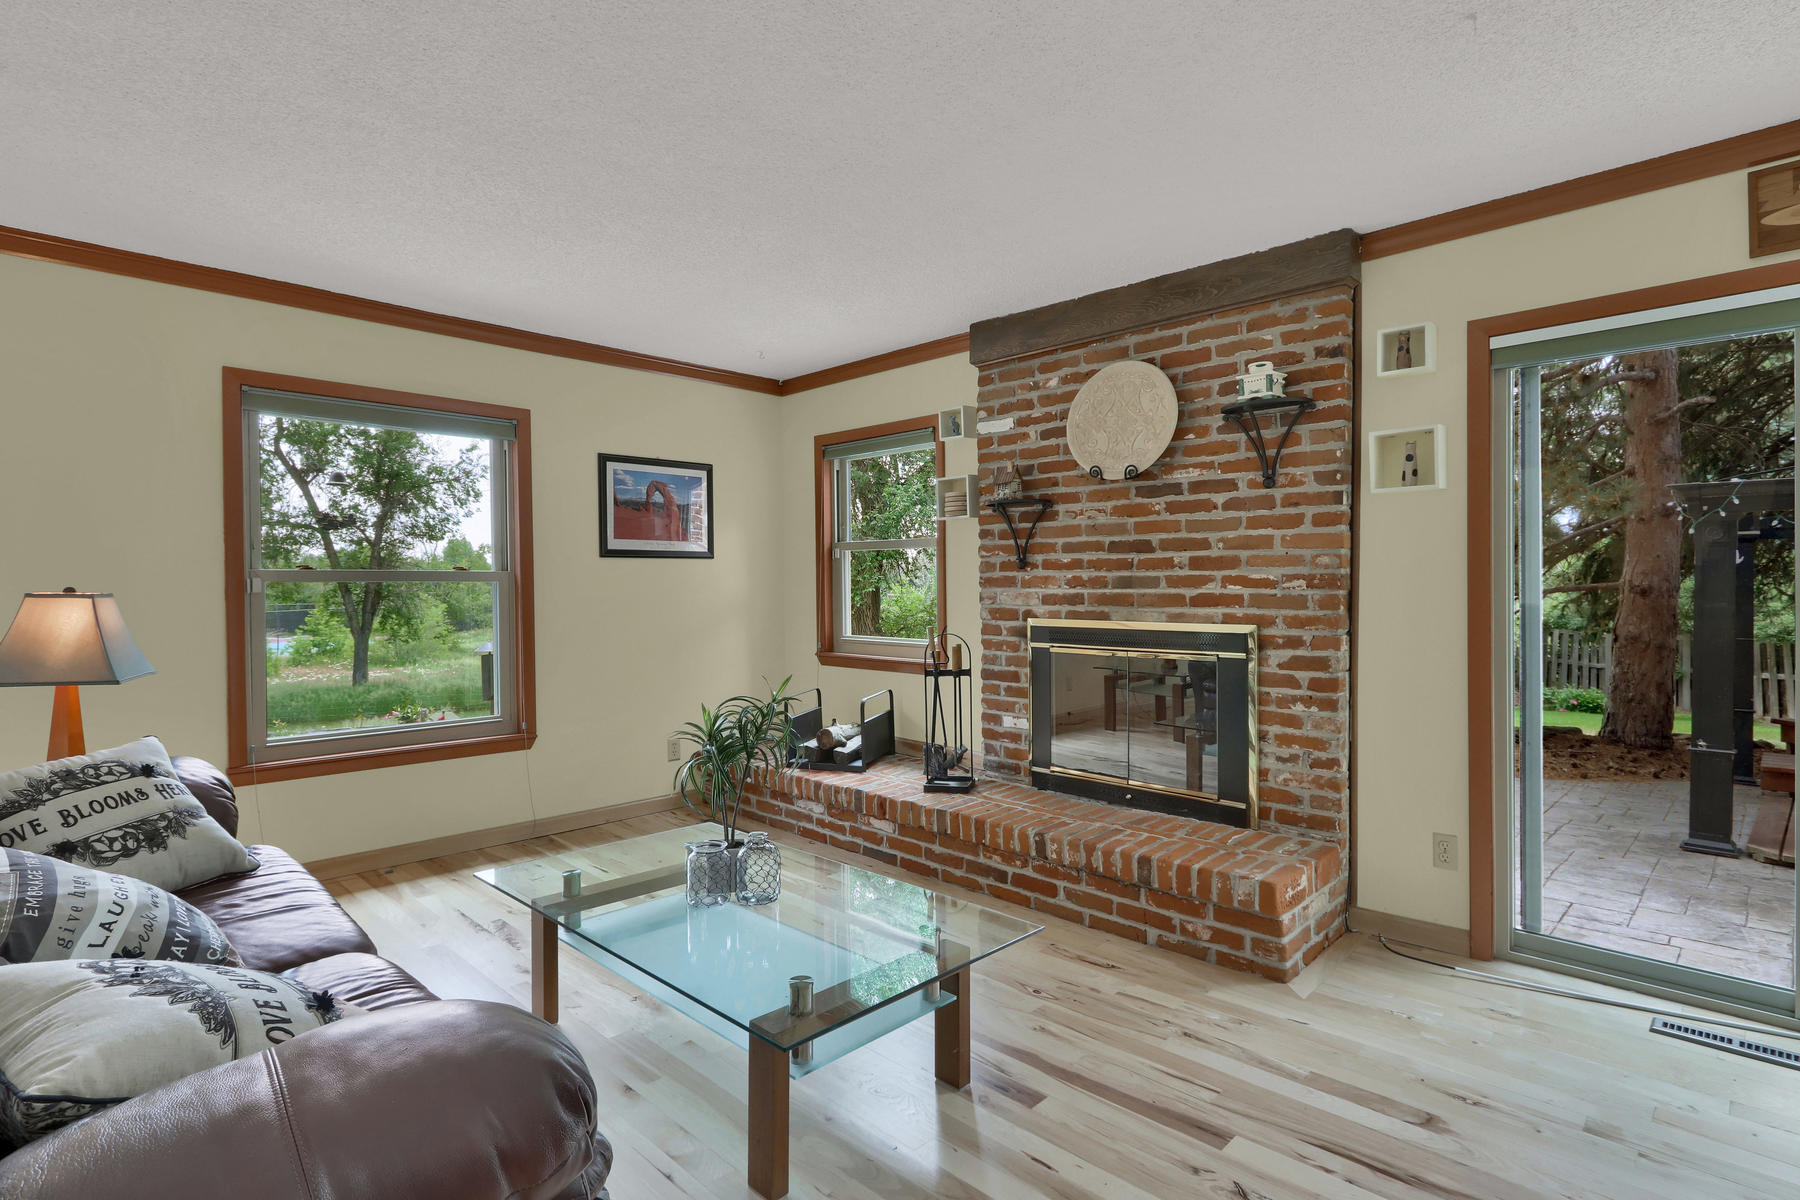 8490 Independence Way Arvada-026-036-Living Room-MLS_Size.jpg